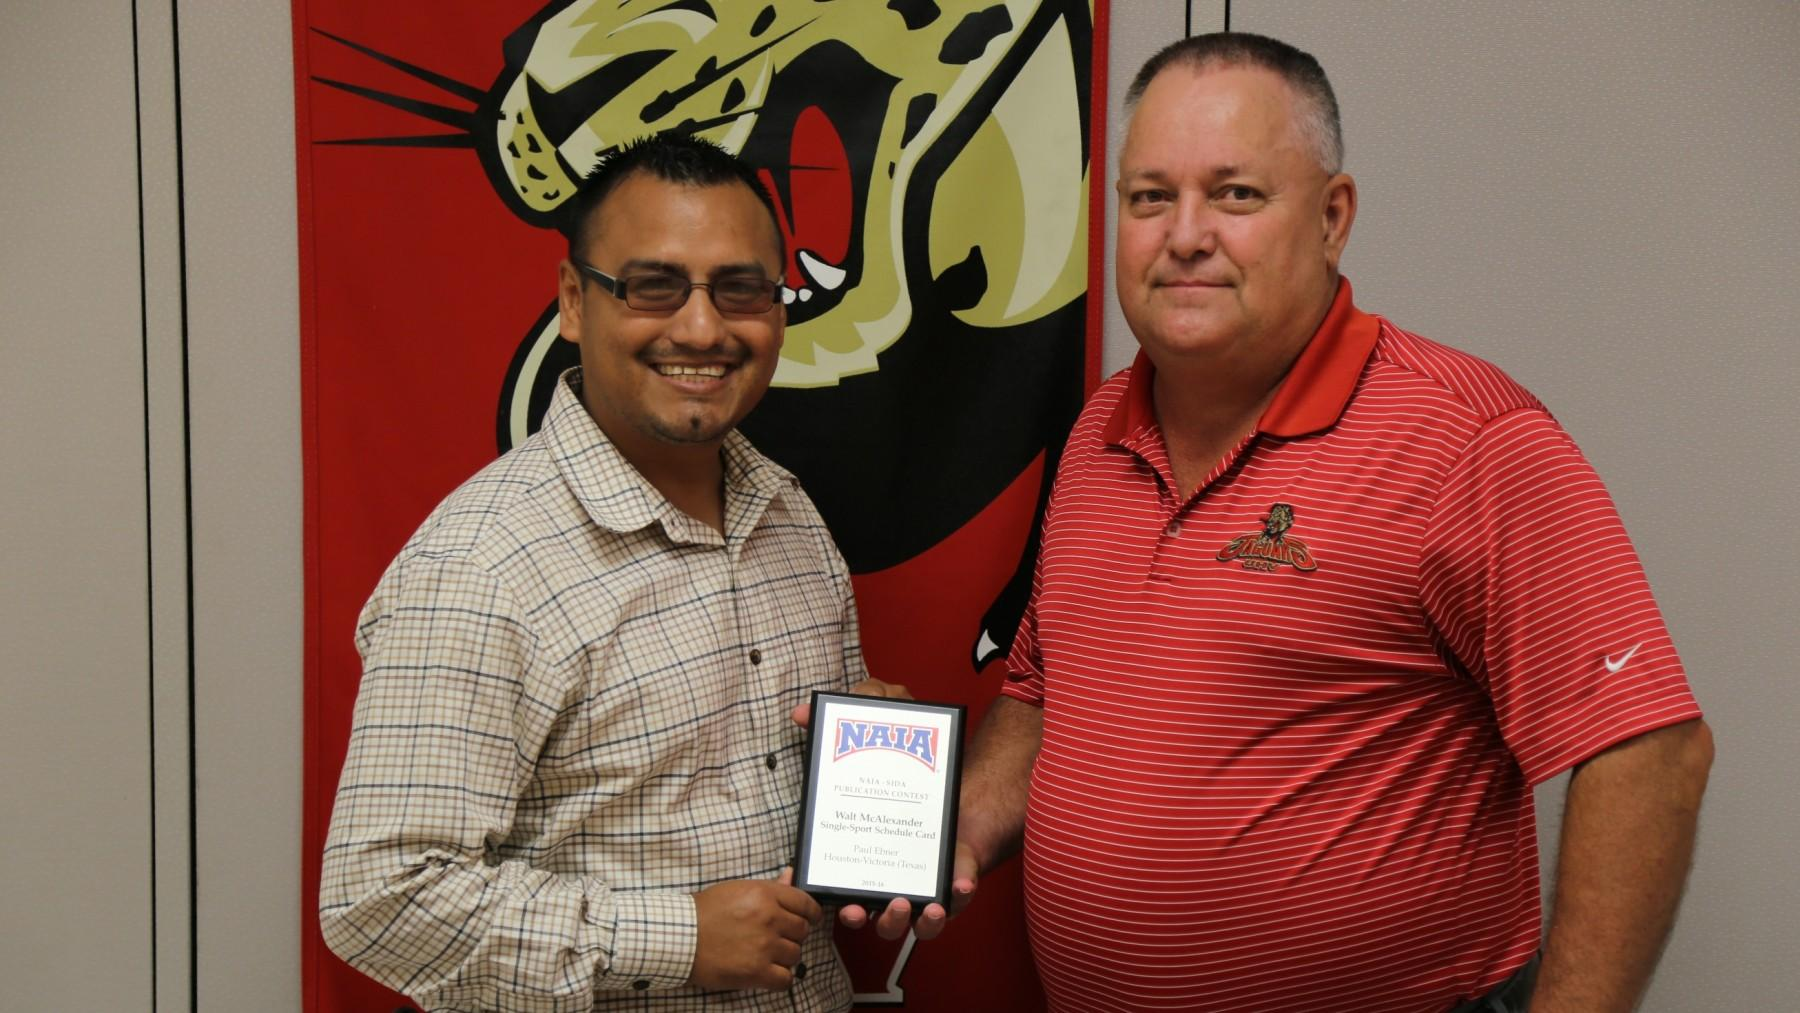 UHV earns awards in sports publication contest